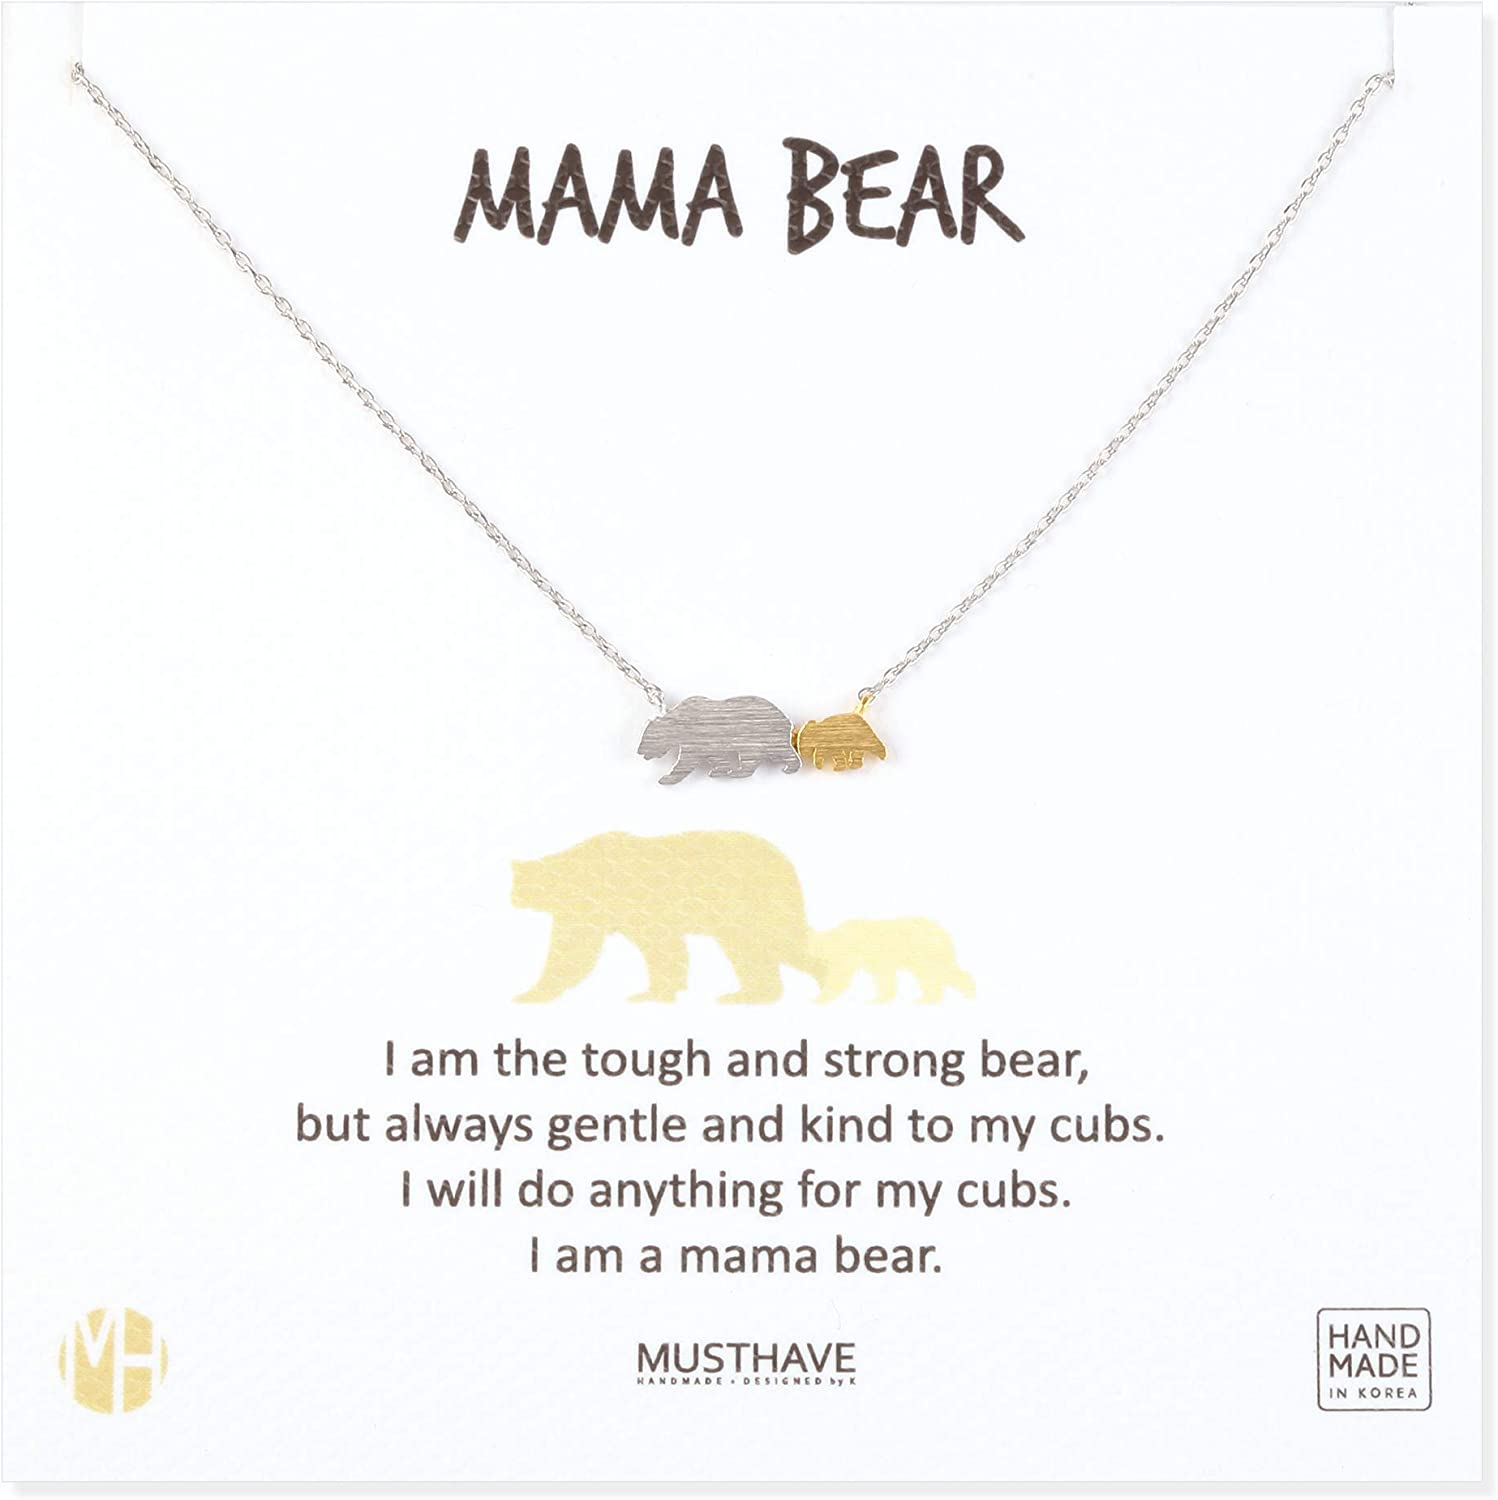 MUSTHAVE Mama Bear 18K Gold Plated Necklace with Message Card, Two Tone Yellow and White Color, Anchor Chain, Best Gift Necklace, Size 16 inch + 2 inch Extender, Mama Bear Pendant, Gift Card